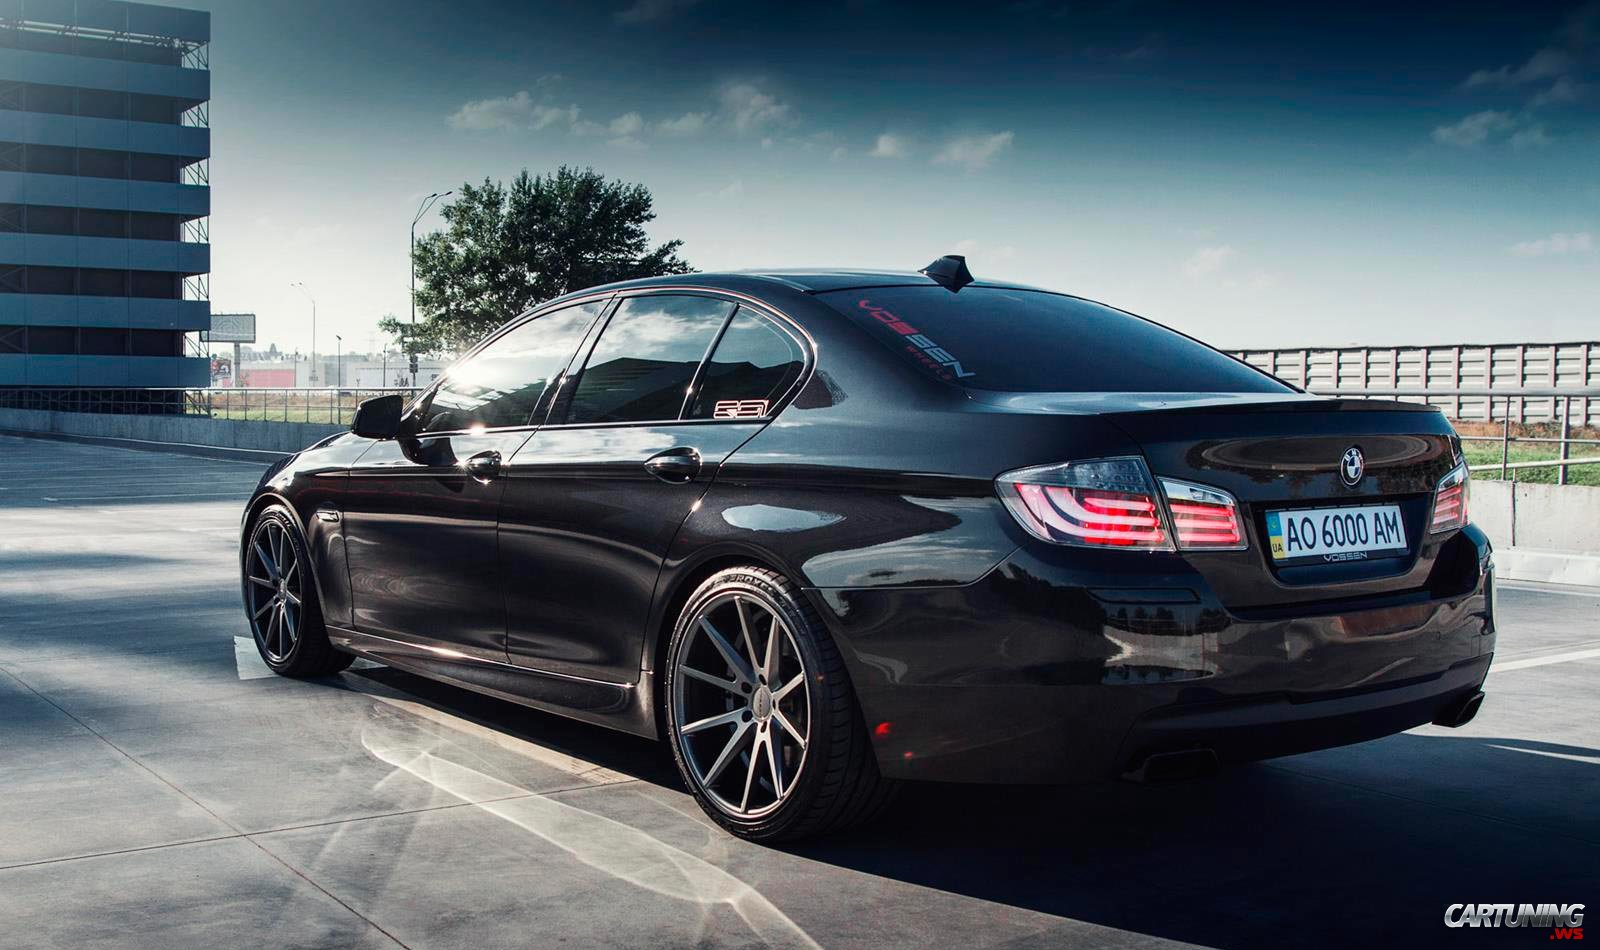 bmw 535i f10 vossen rear. Black Bedroom Furniture Sets. Home Design Ideas